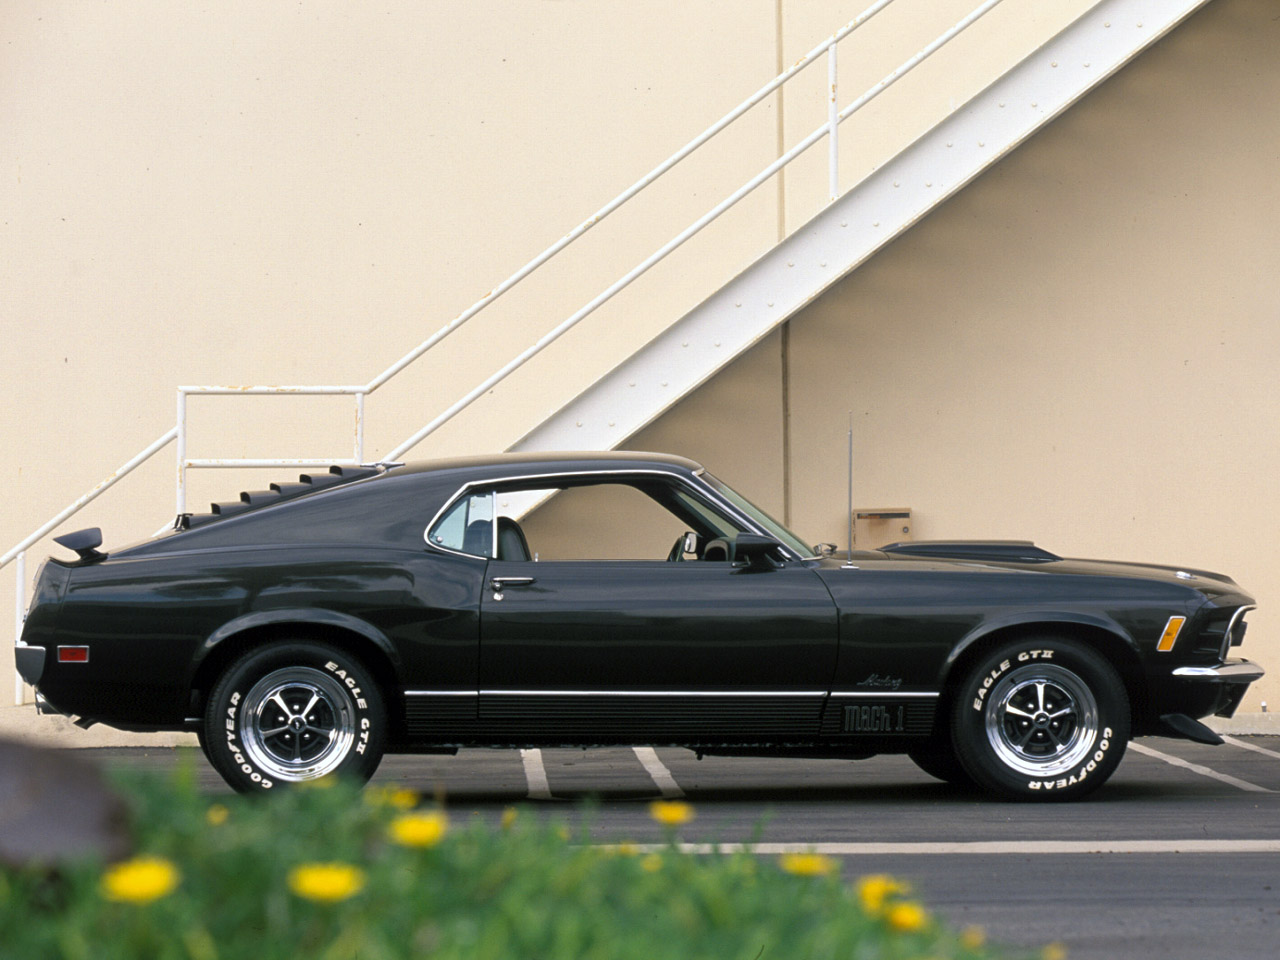 1970 ford mustang mach 1 pictures page 3 fast autos net image